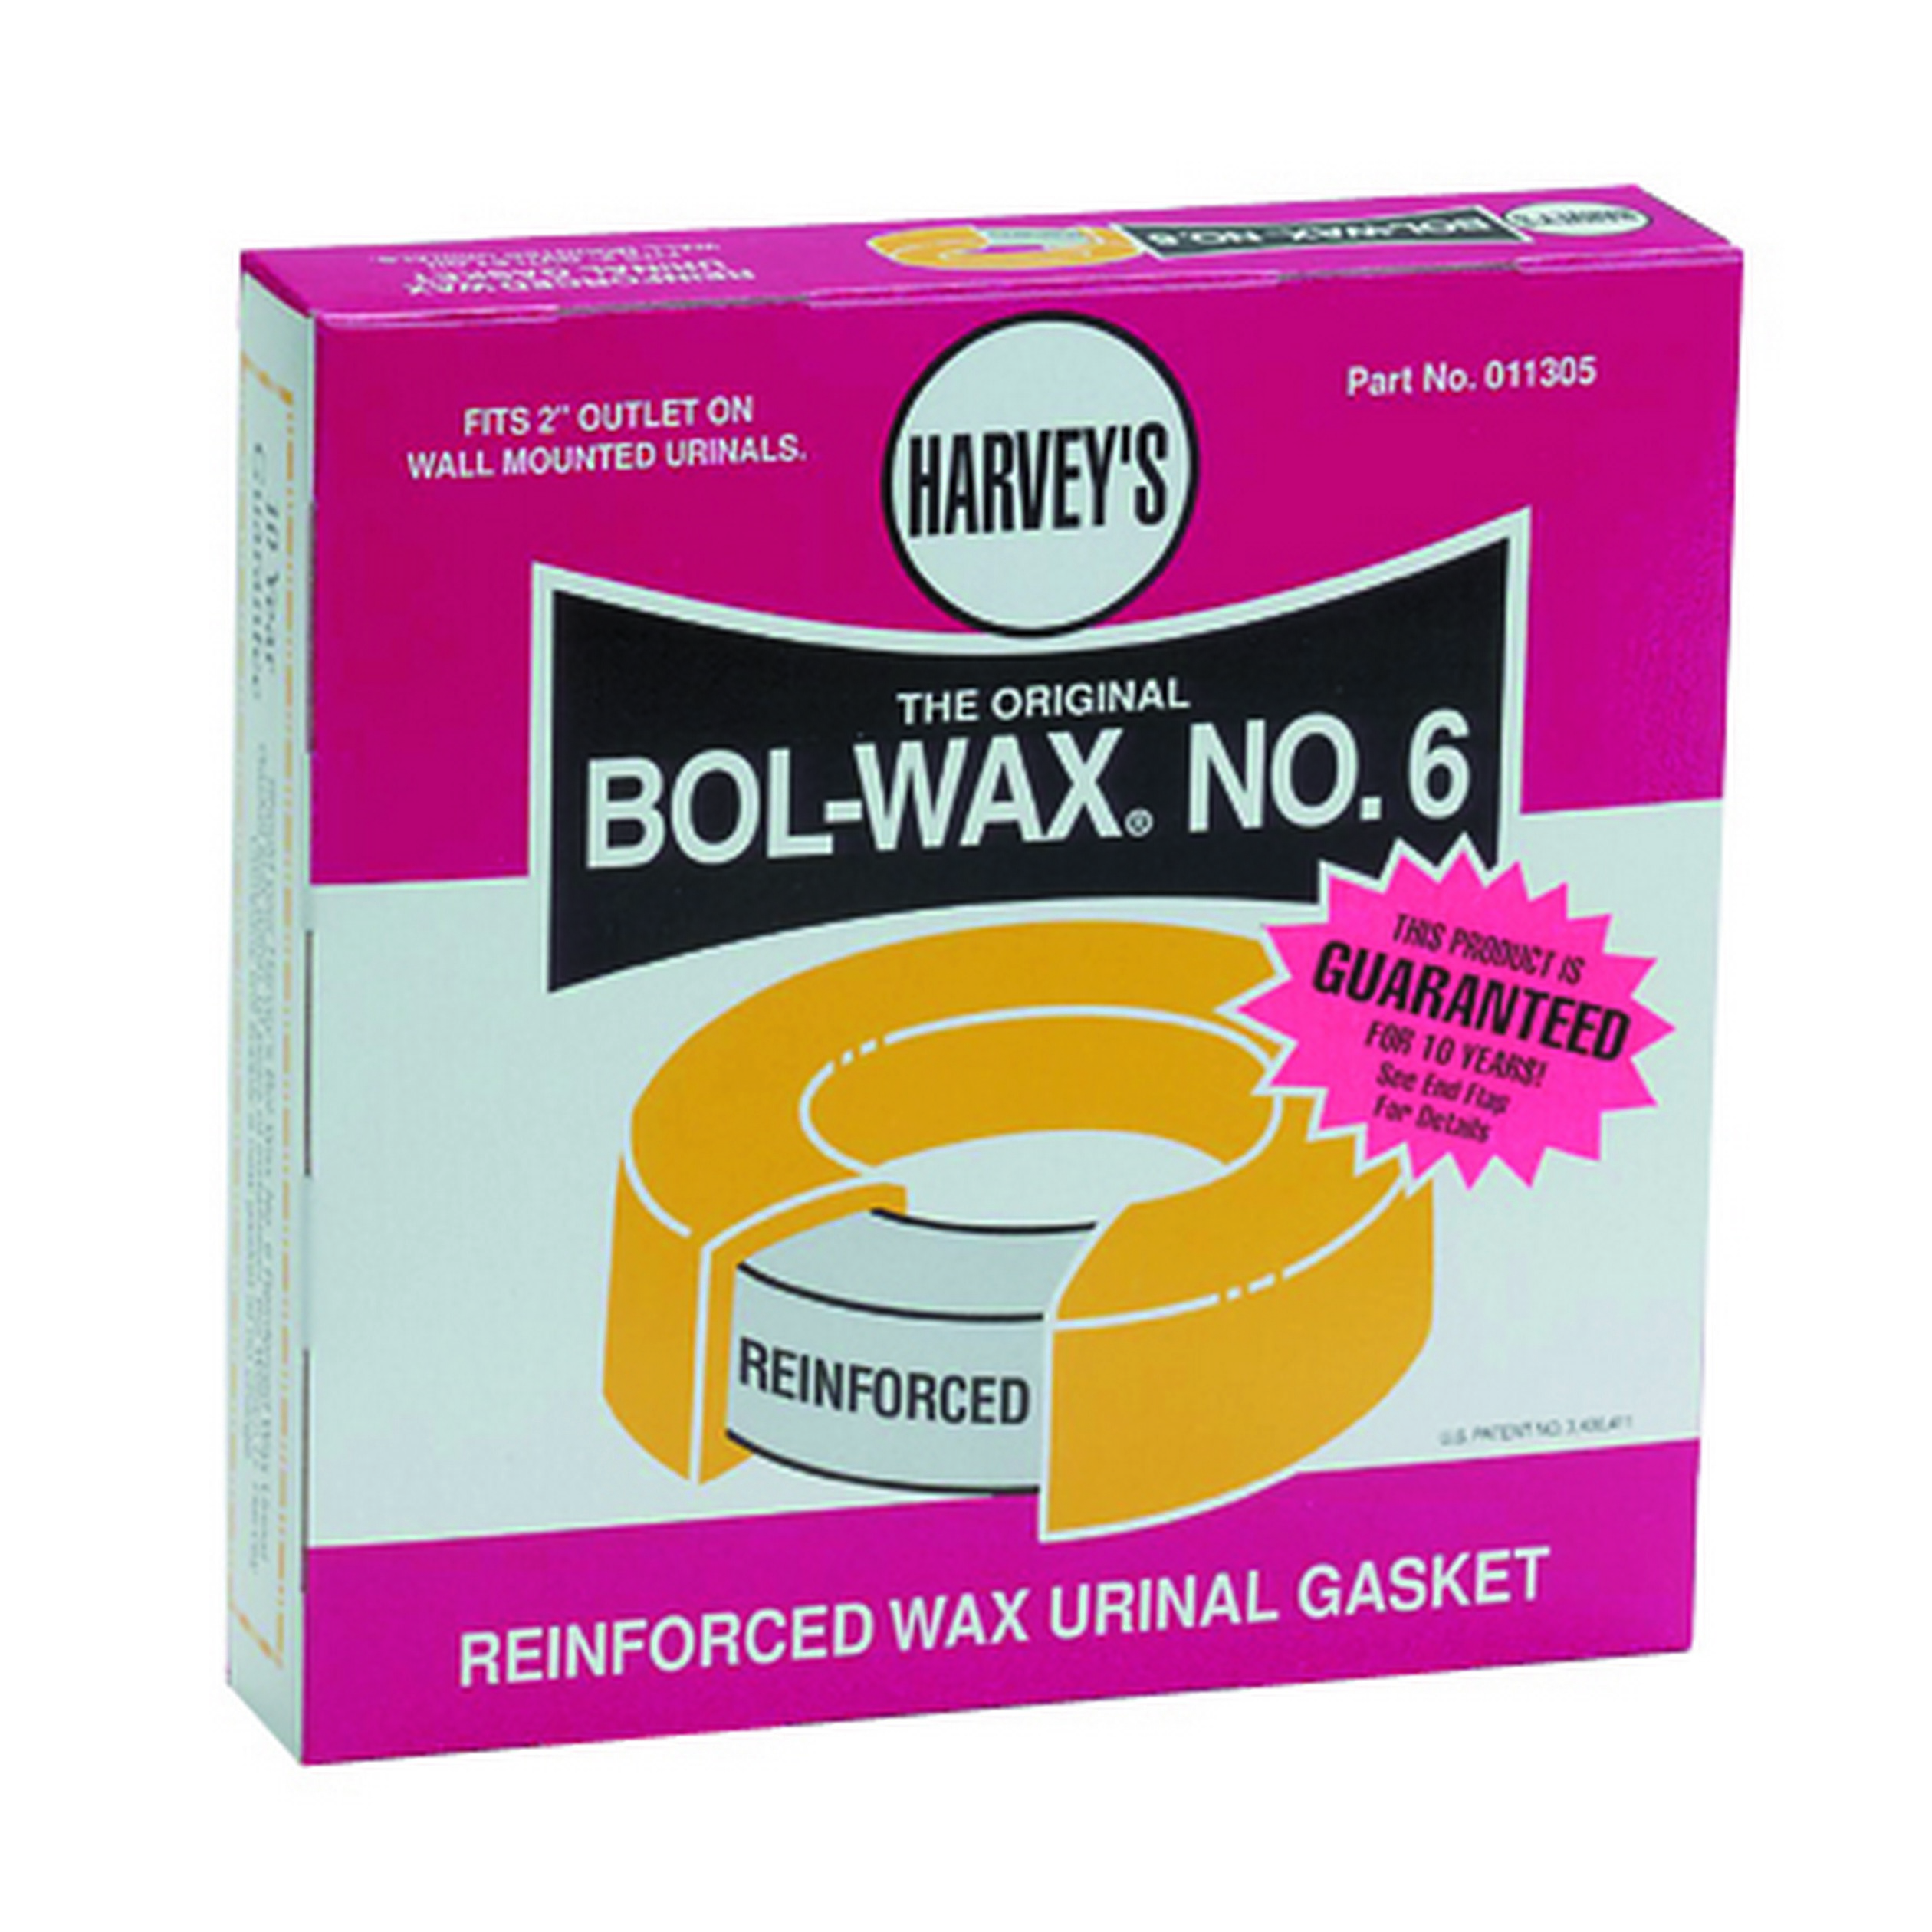 William H. Harvey BOL-WAX® 11305 Specialty Reinforced Wax Gasket, For Use With Floor or Wall Outlet Toilet Bowls